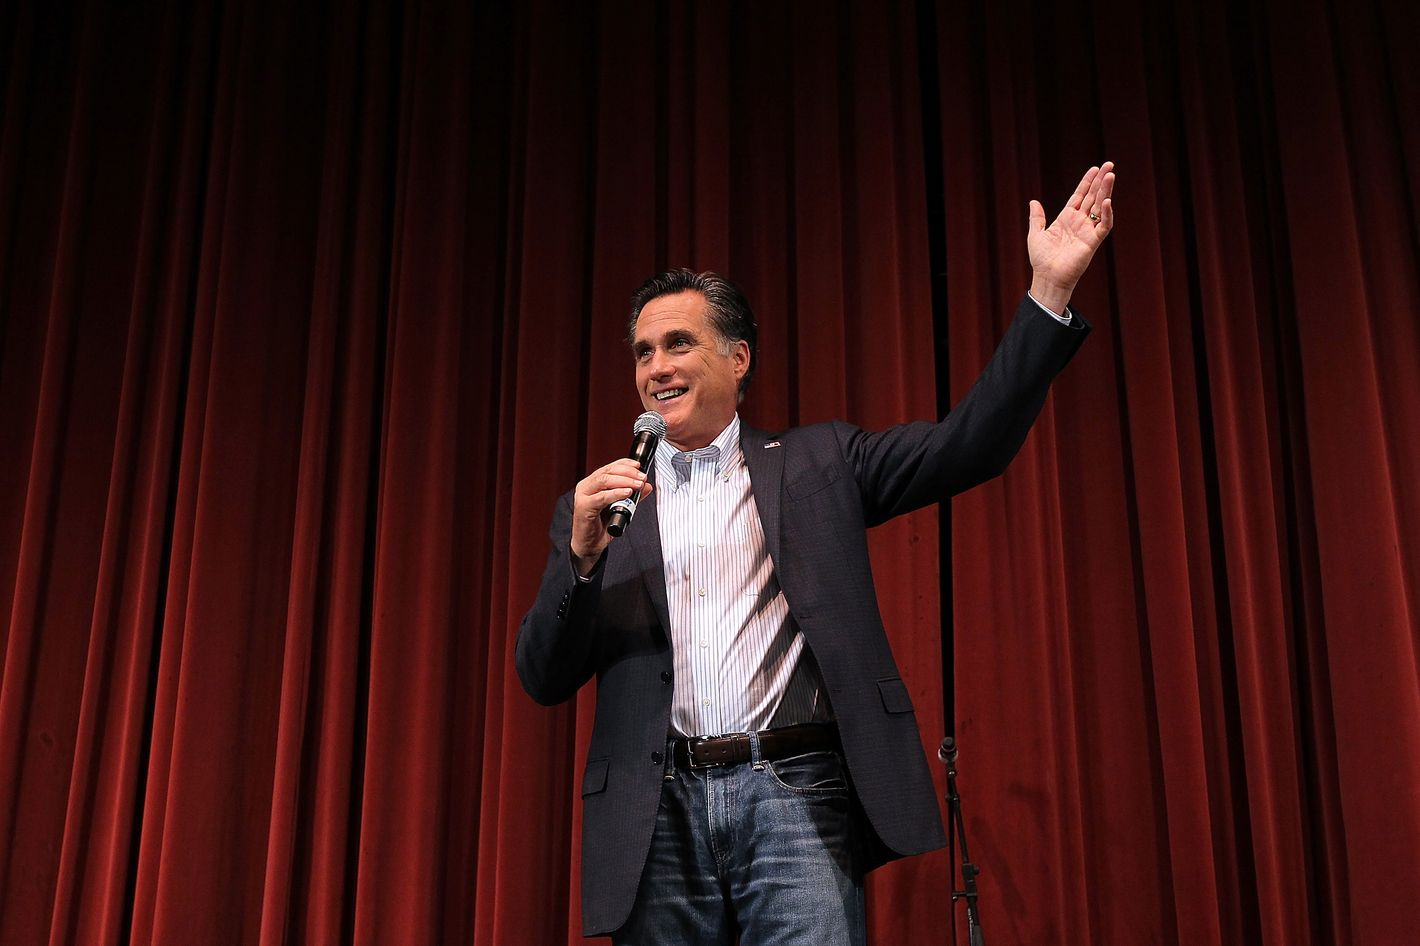 Republican presidential candidate and former Massachusetts Gov. Mitt Romney speaks during a campaign rally at the Royal Oak Theatre on February 27, 2012 in Royal Oak, Michigan.